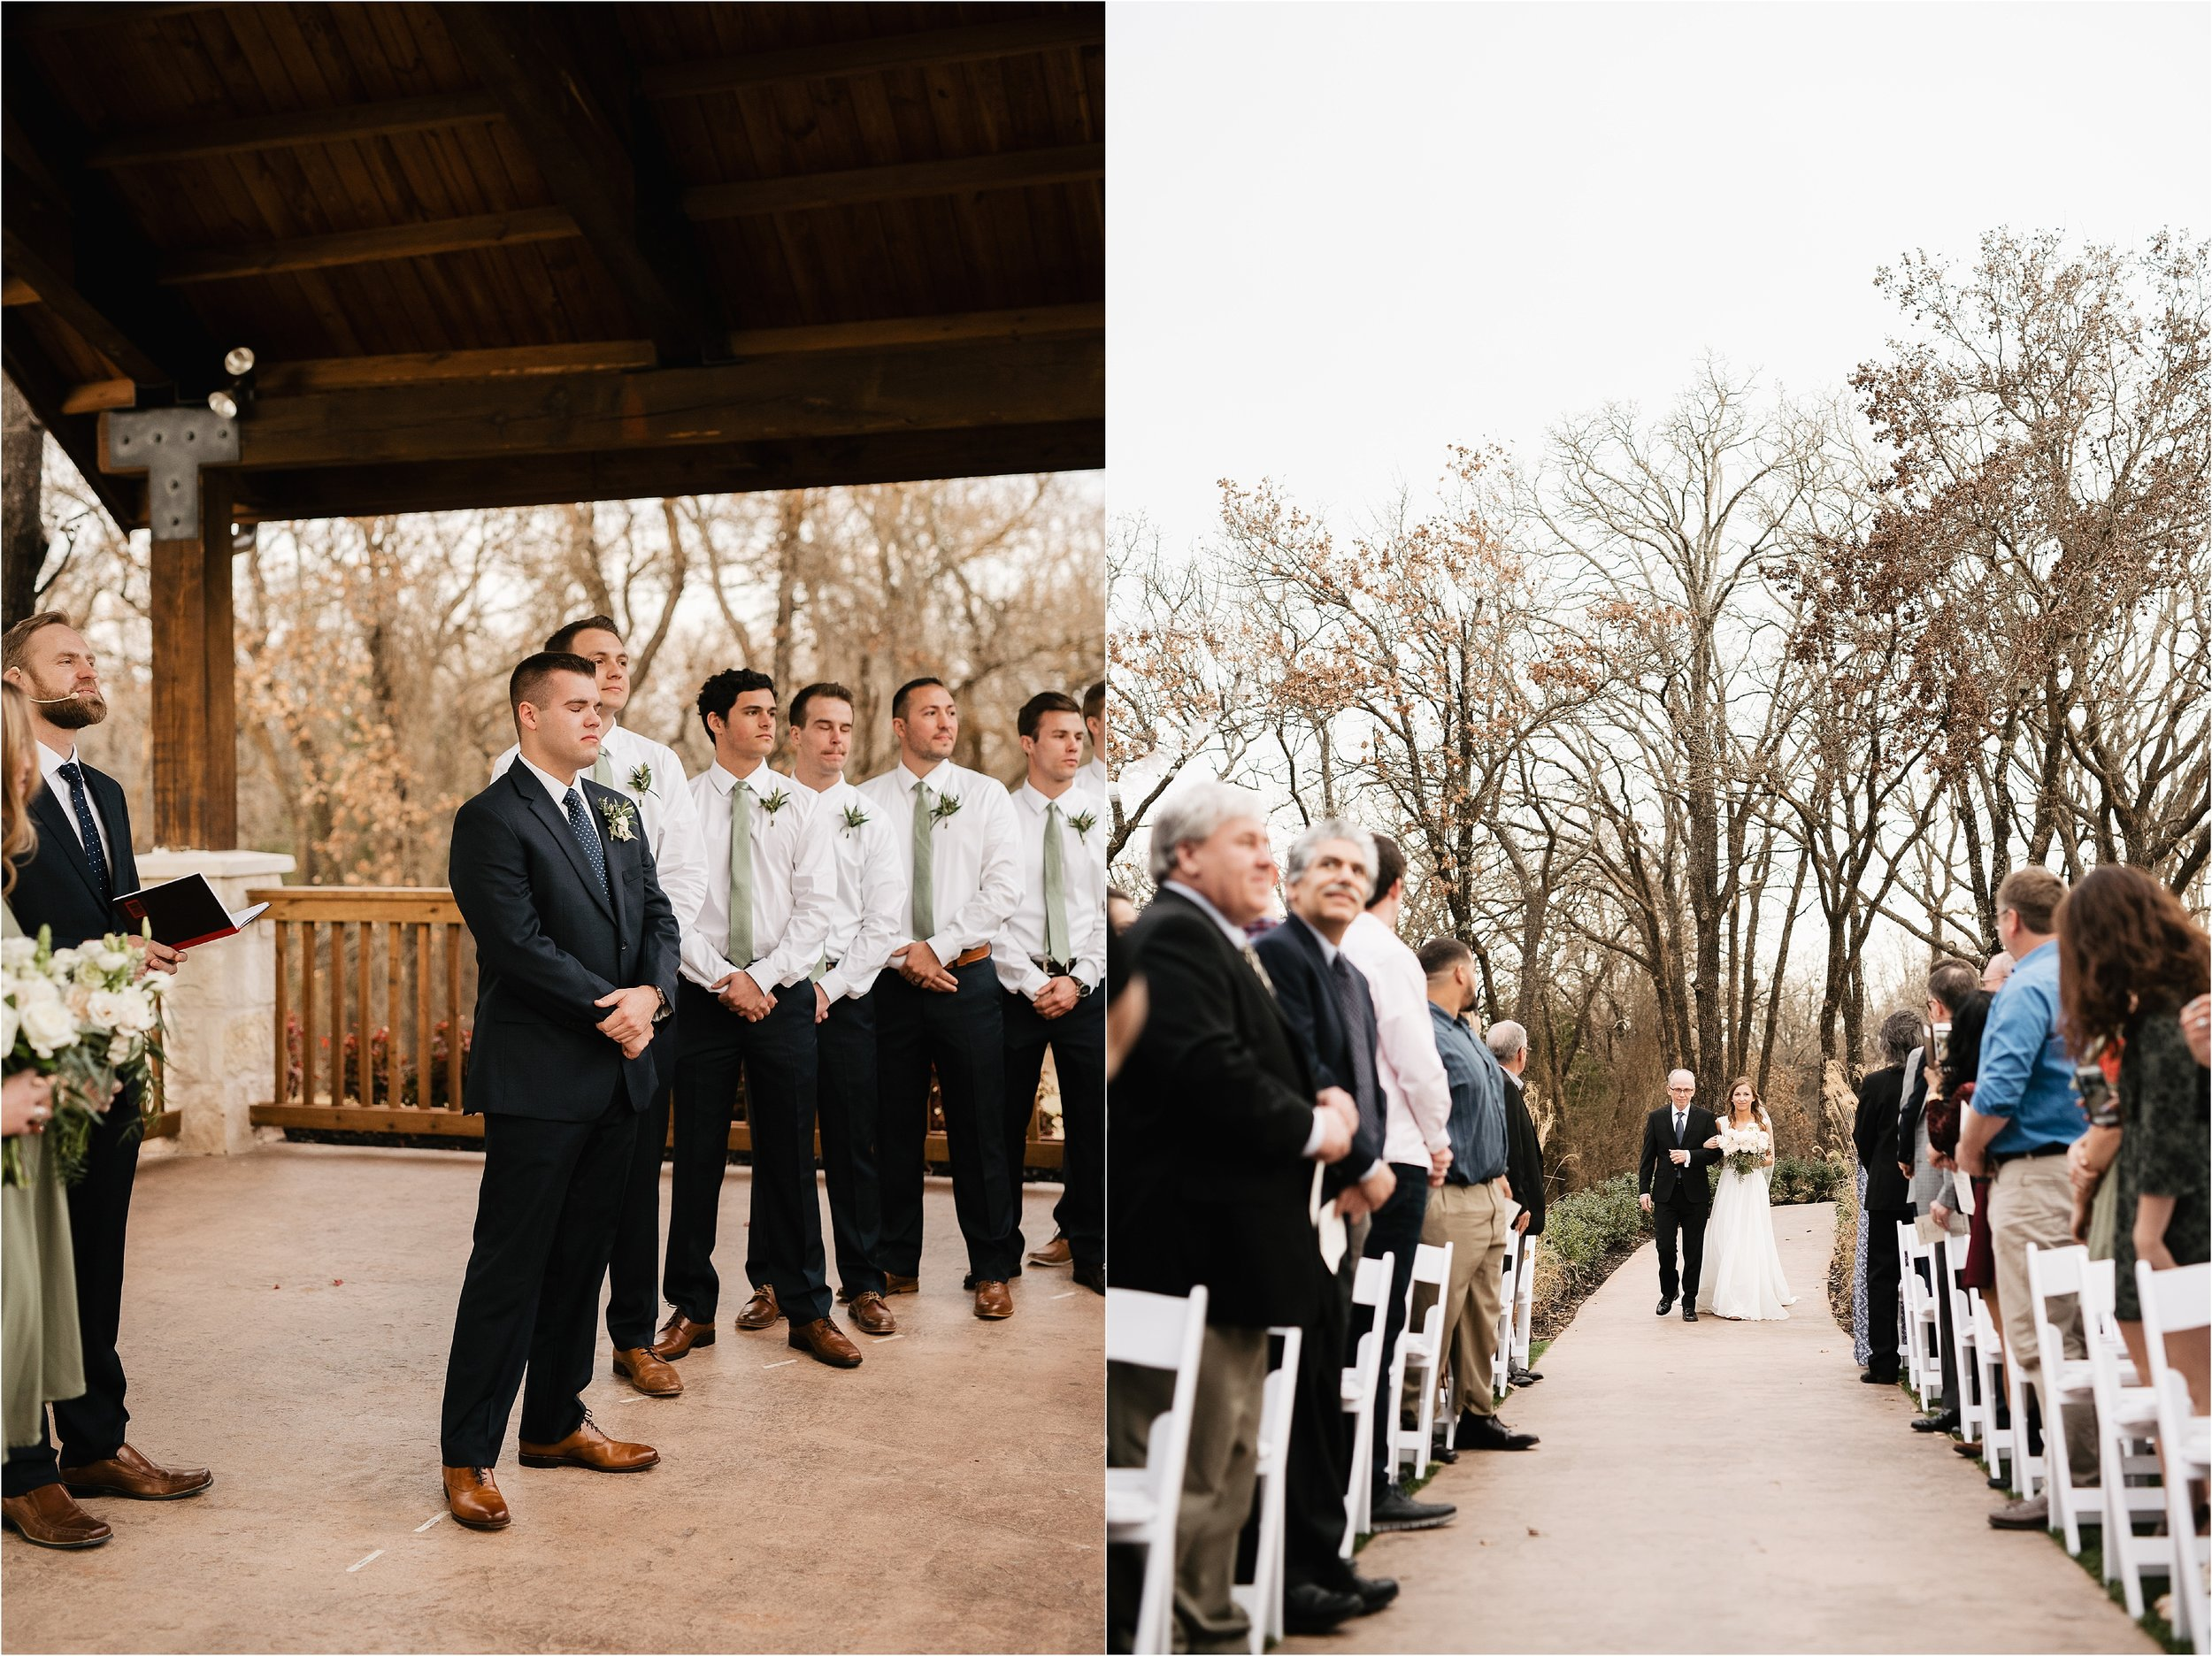 the springs norman oklahoma city wedding photographer outdoor ceremony reception wedding venue overcast family friends groomsmen groom